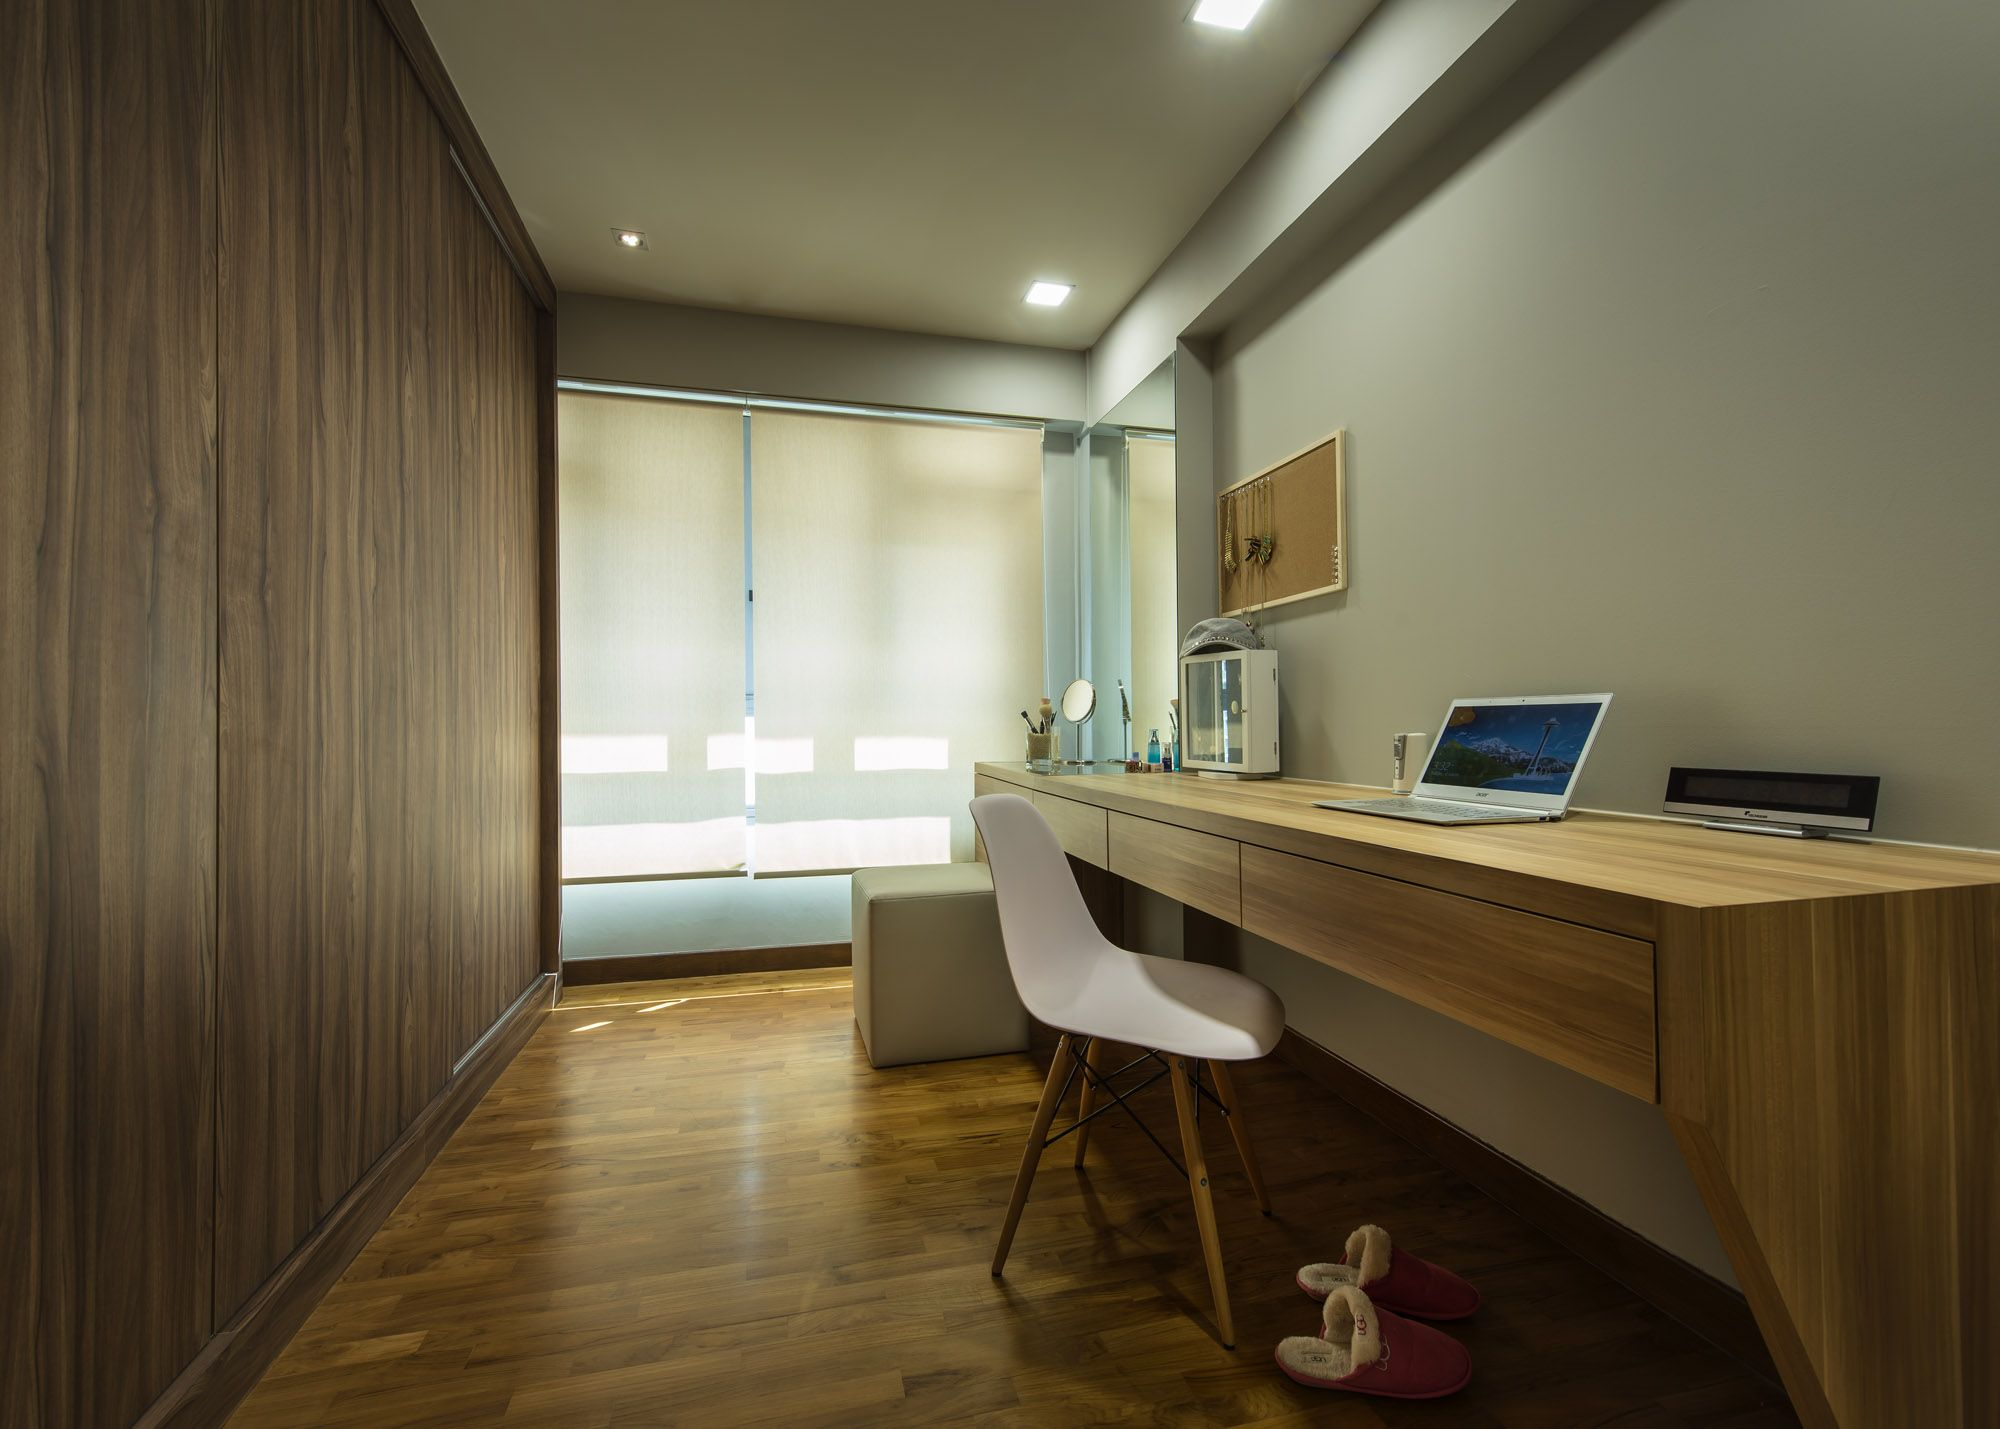 Interior design by Rezt n Relax of Singapore Renovation